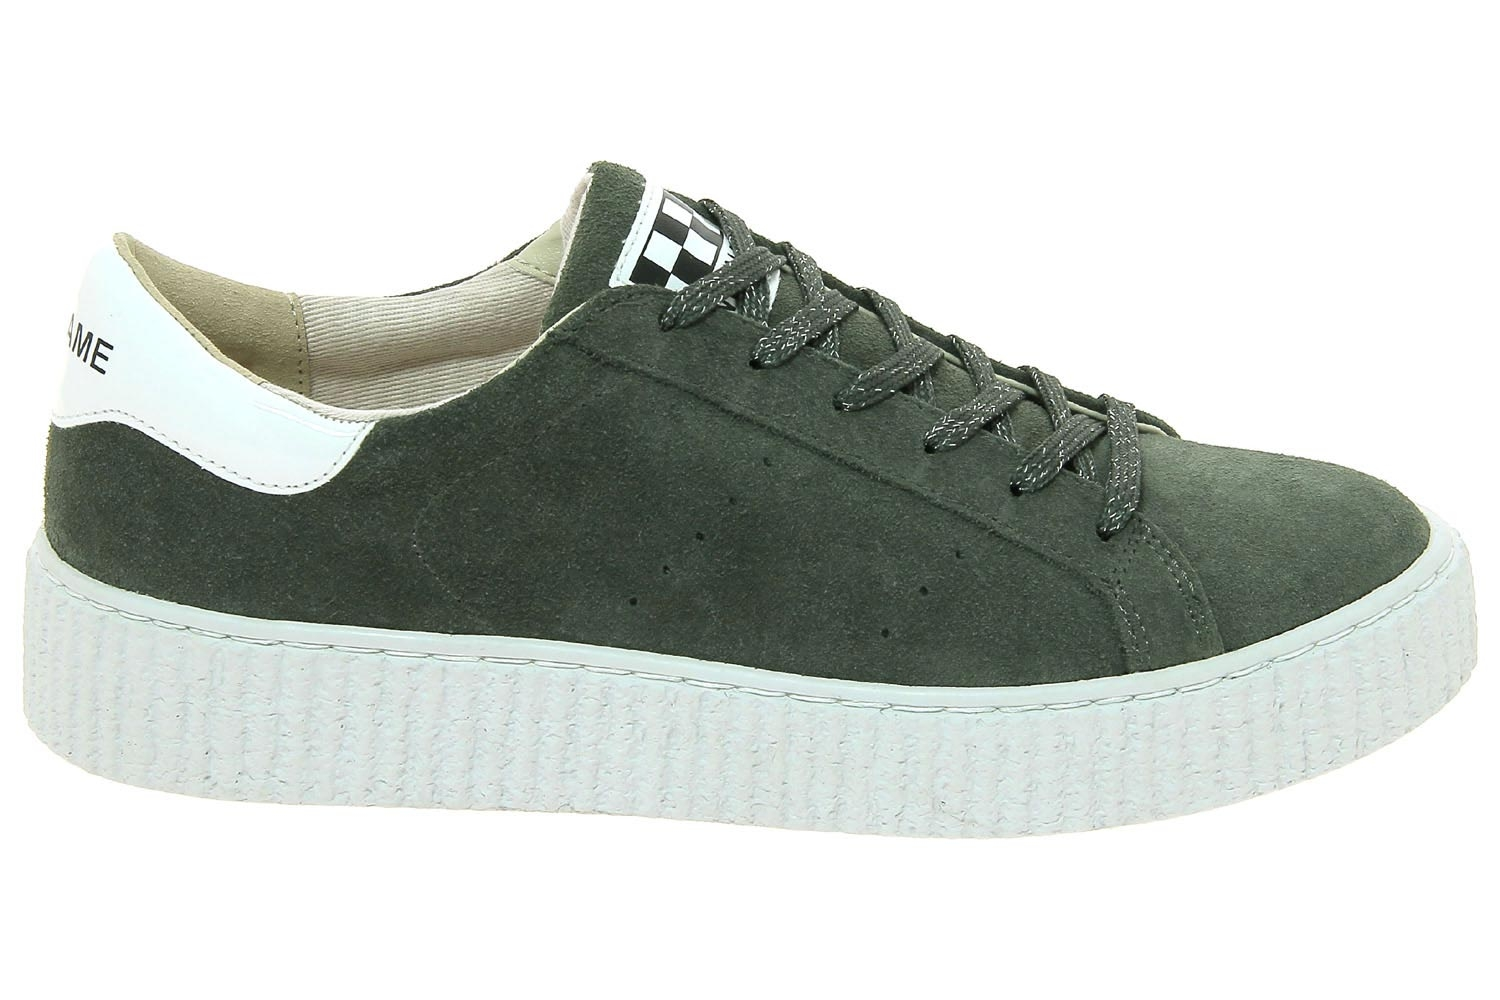 Sneaker Baskets Vert Picadilly Mode Chaussures Femme No Name 53L4qARj